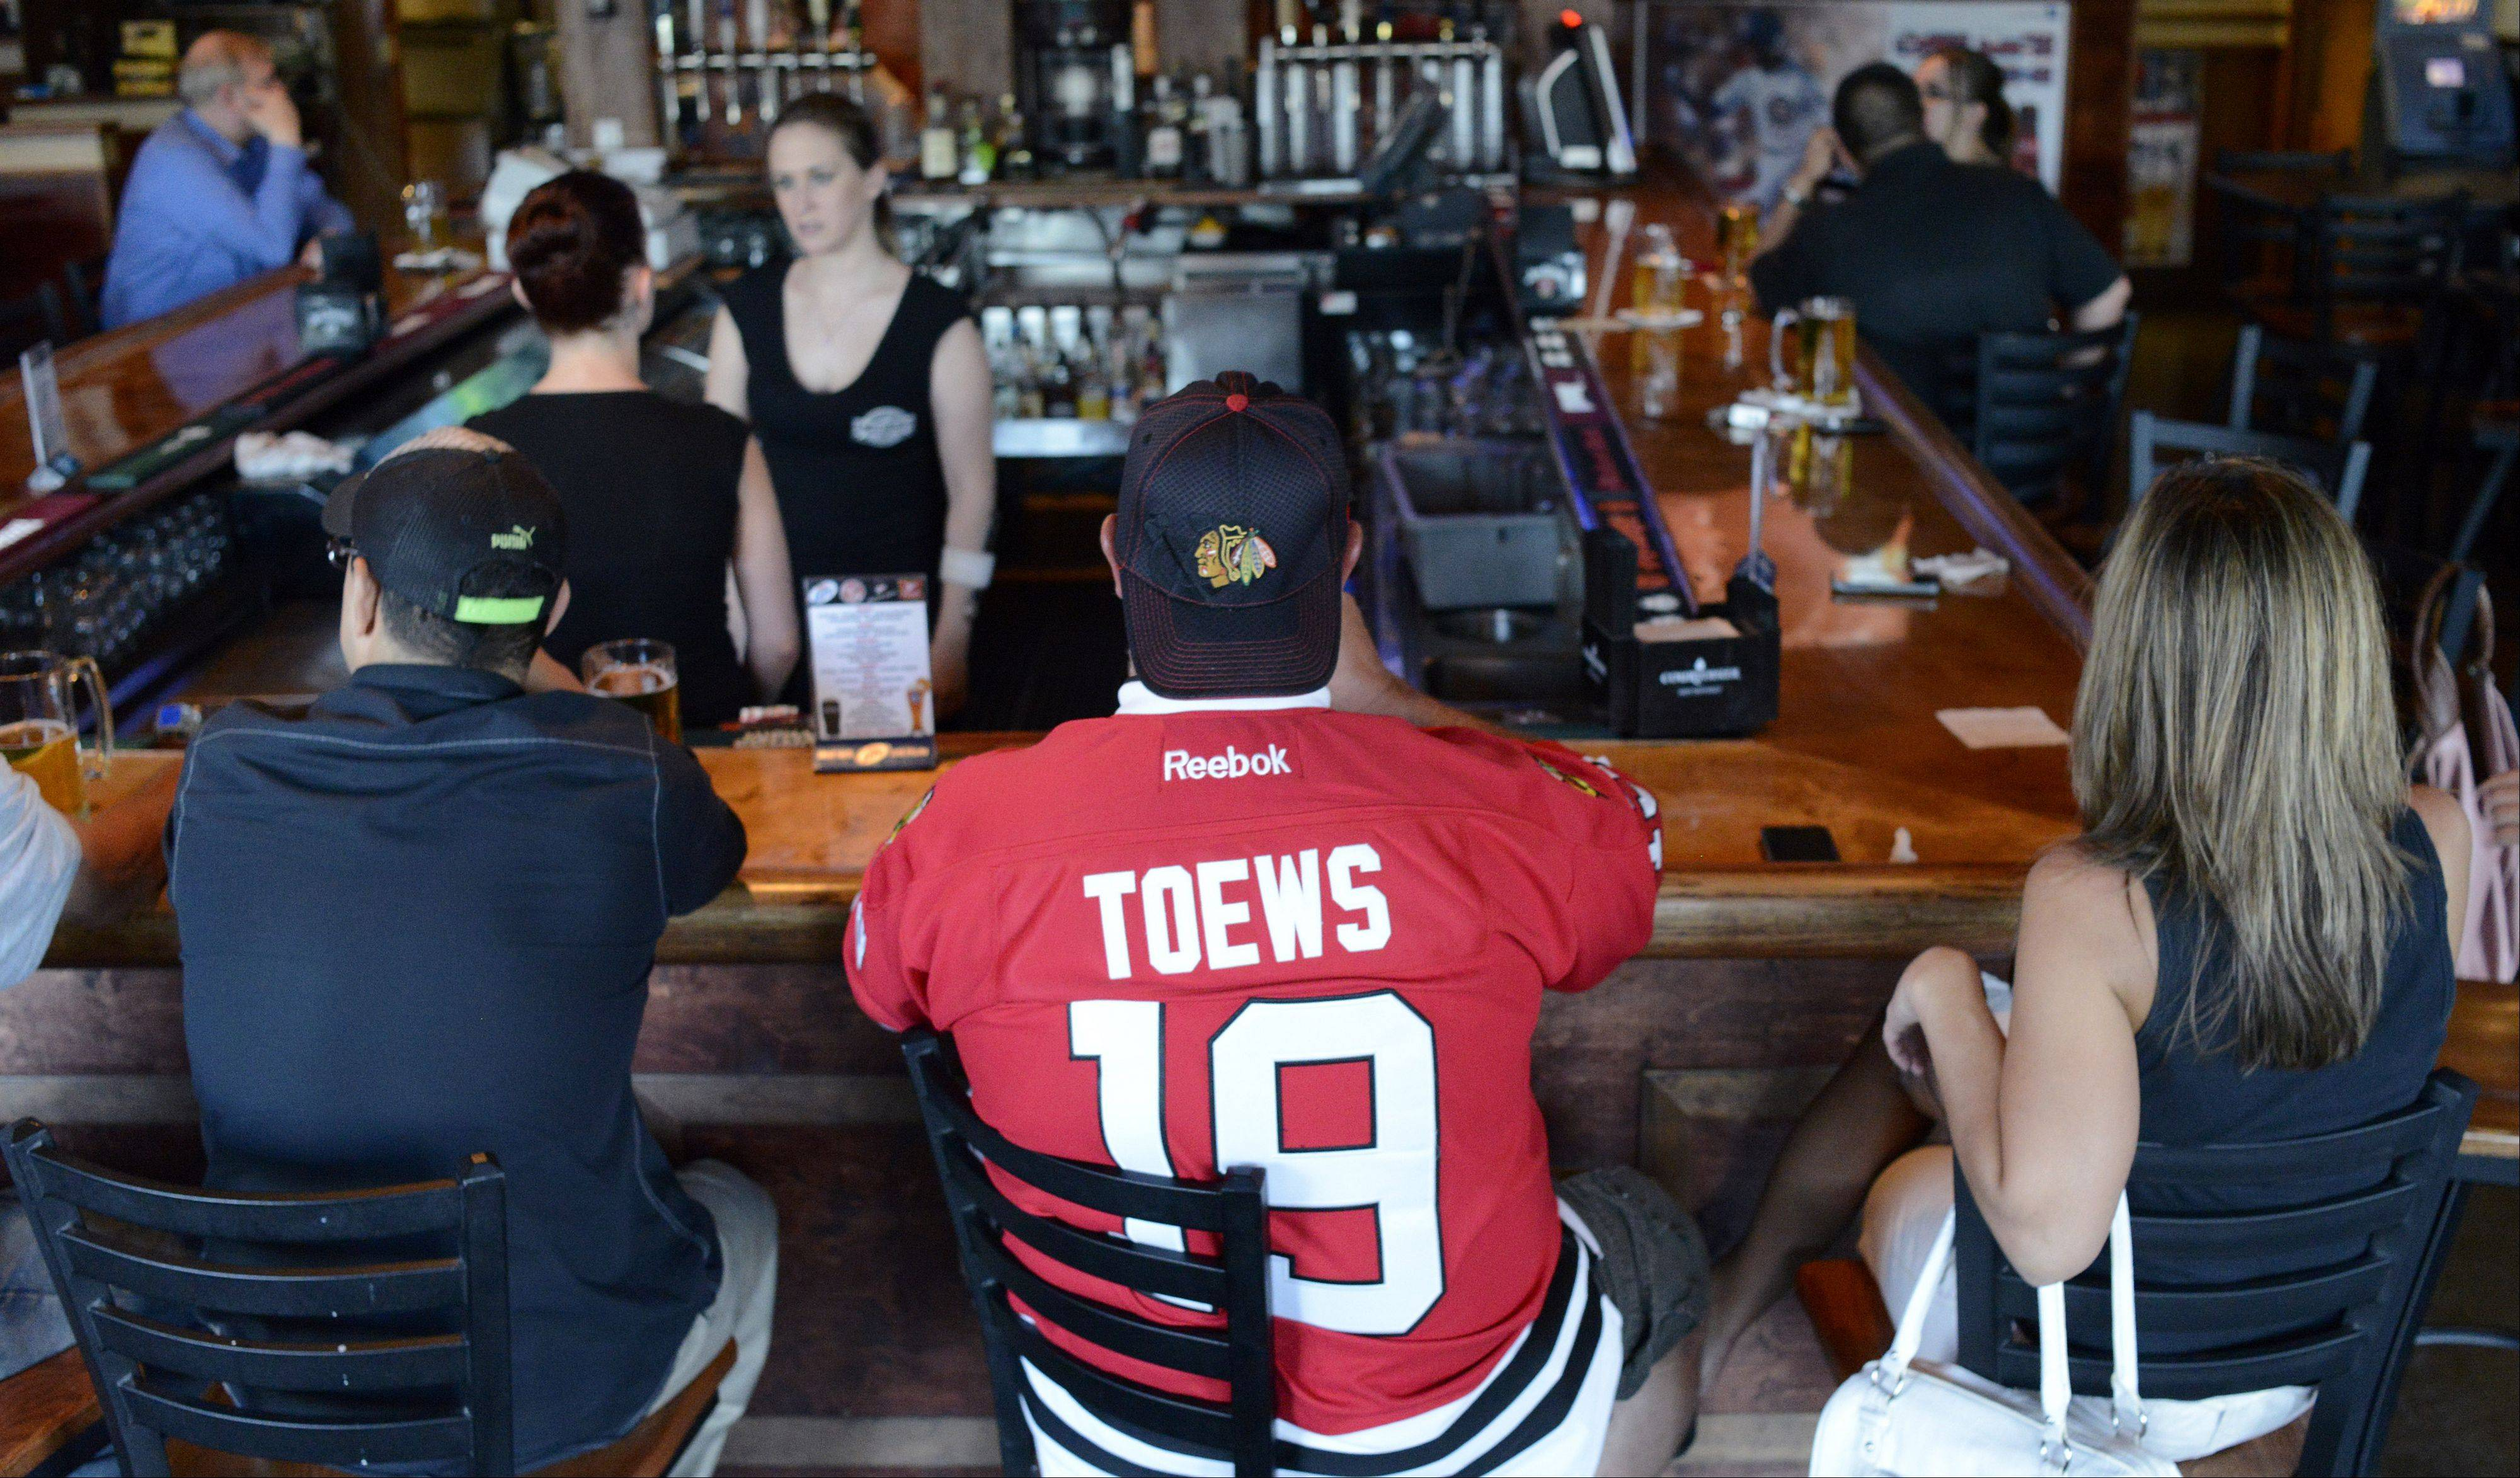 Regular customer Scott Kennedy of Aurora wears his Jonathan Toews jersey while sitting with wife Kim at Chelios' Pub in Aurora.